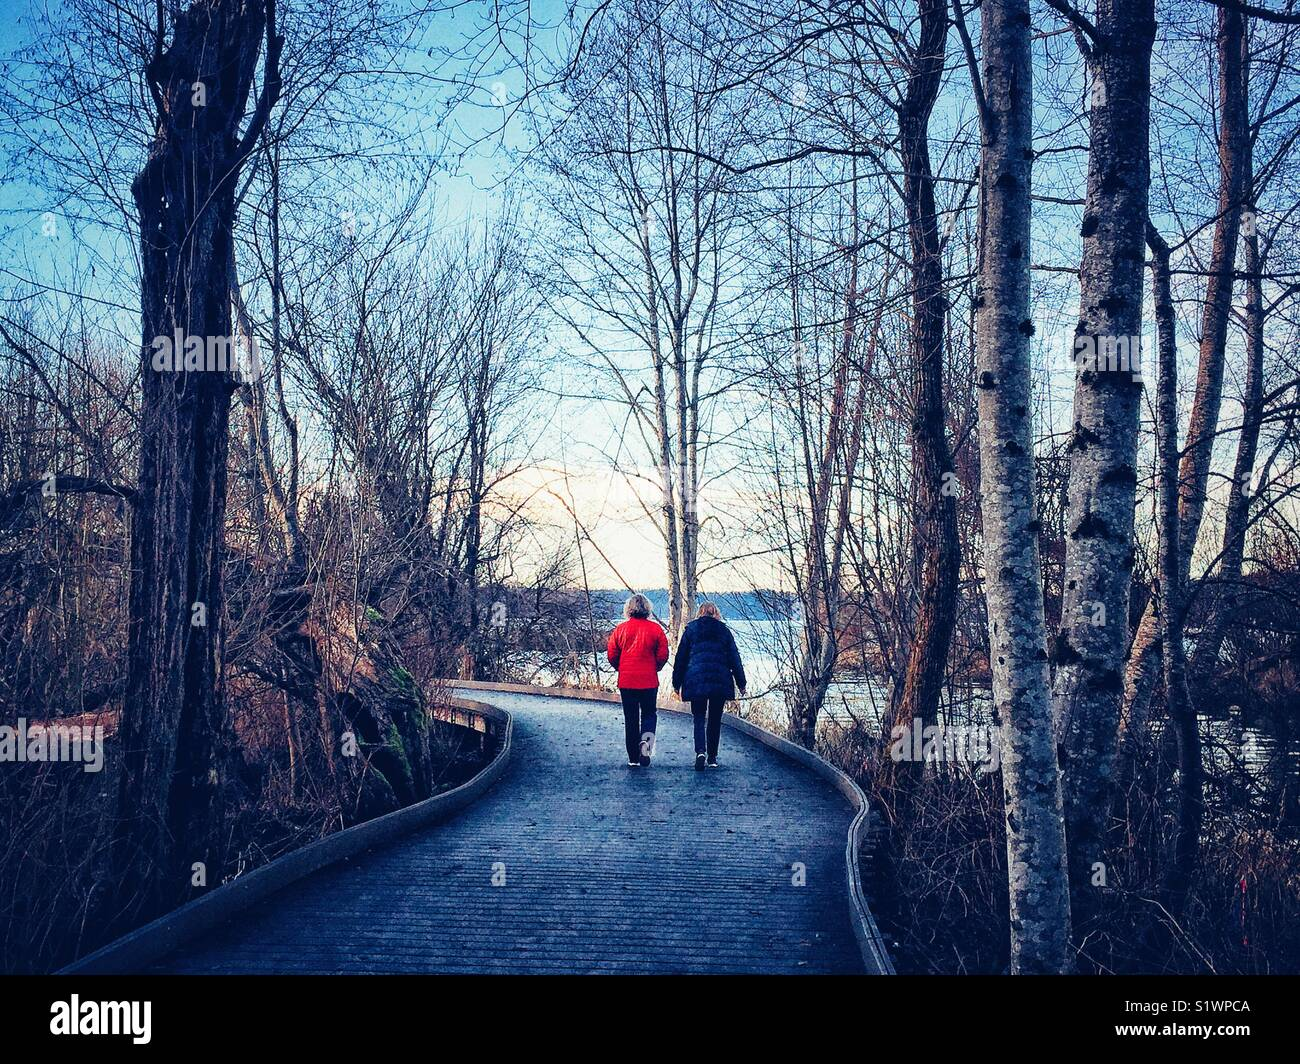 Two women walk on a path to the lake Sammamish, Issaquah, Washington state - Stock Image